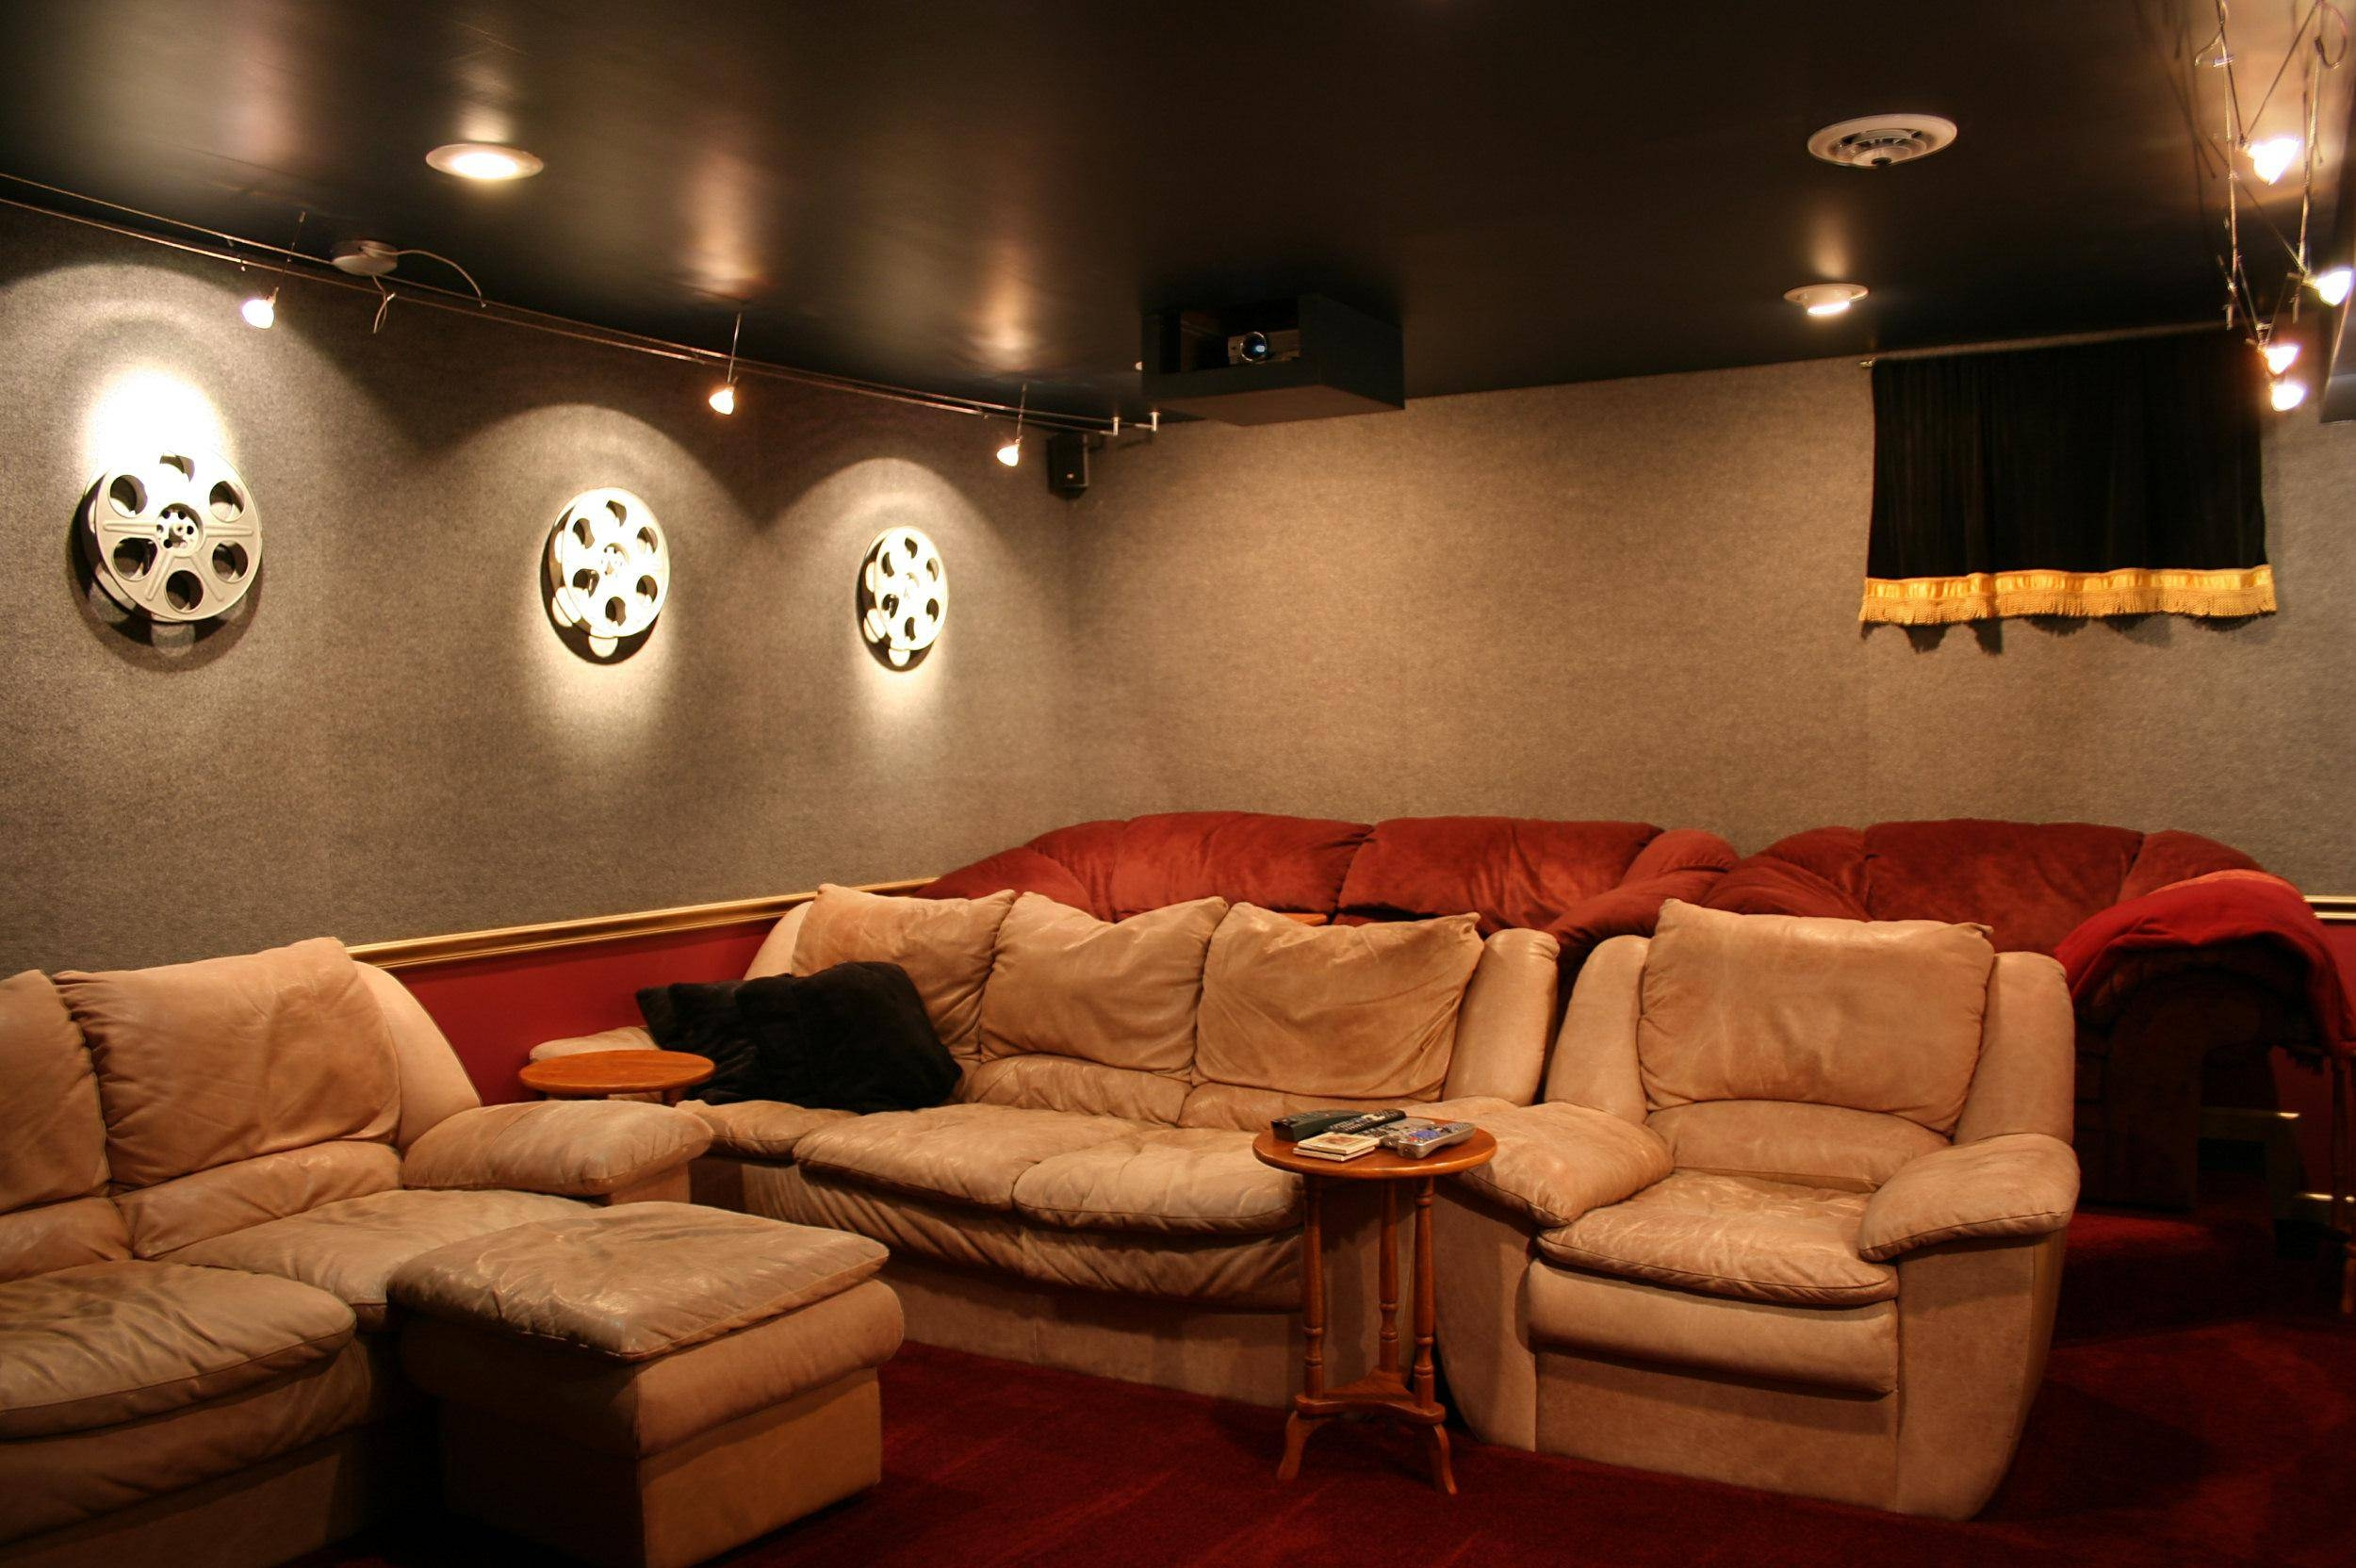 Cozy Wall Decor Home Theater Room Size Home Theater Decor Wall Art Throughout Most Recent Home Theater Wall Art (View 5 of 30)